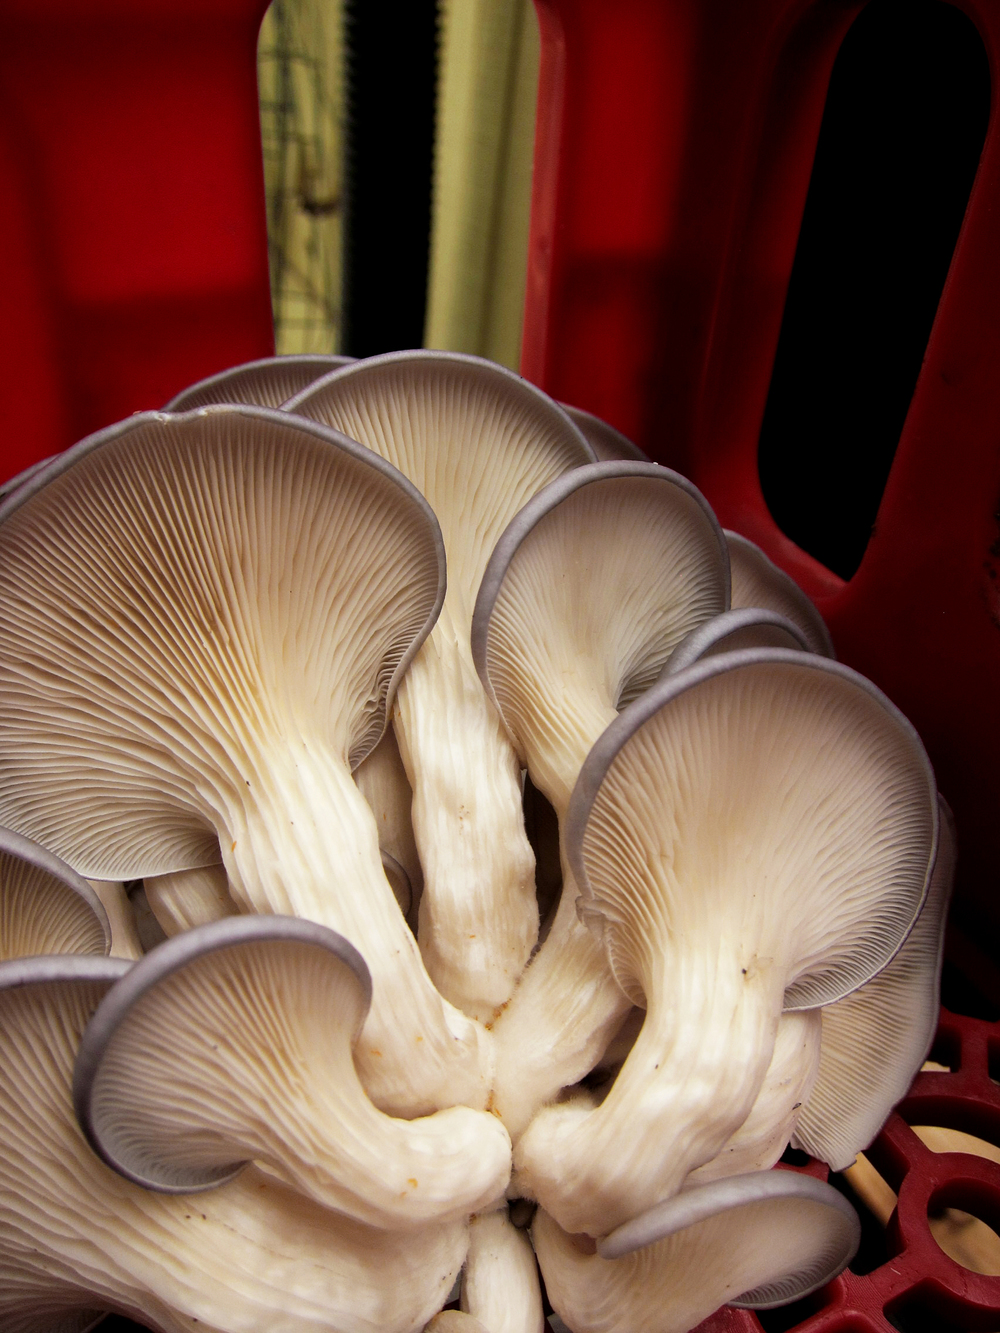 Close up of oyster mushrooms - a hardy, versatile, resilient species.     Photo provided by Martin Gordon